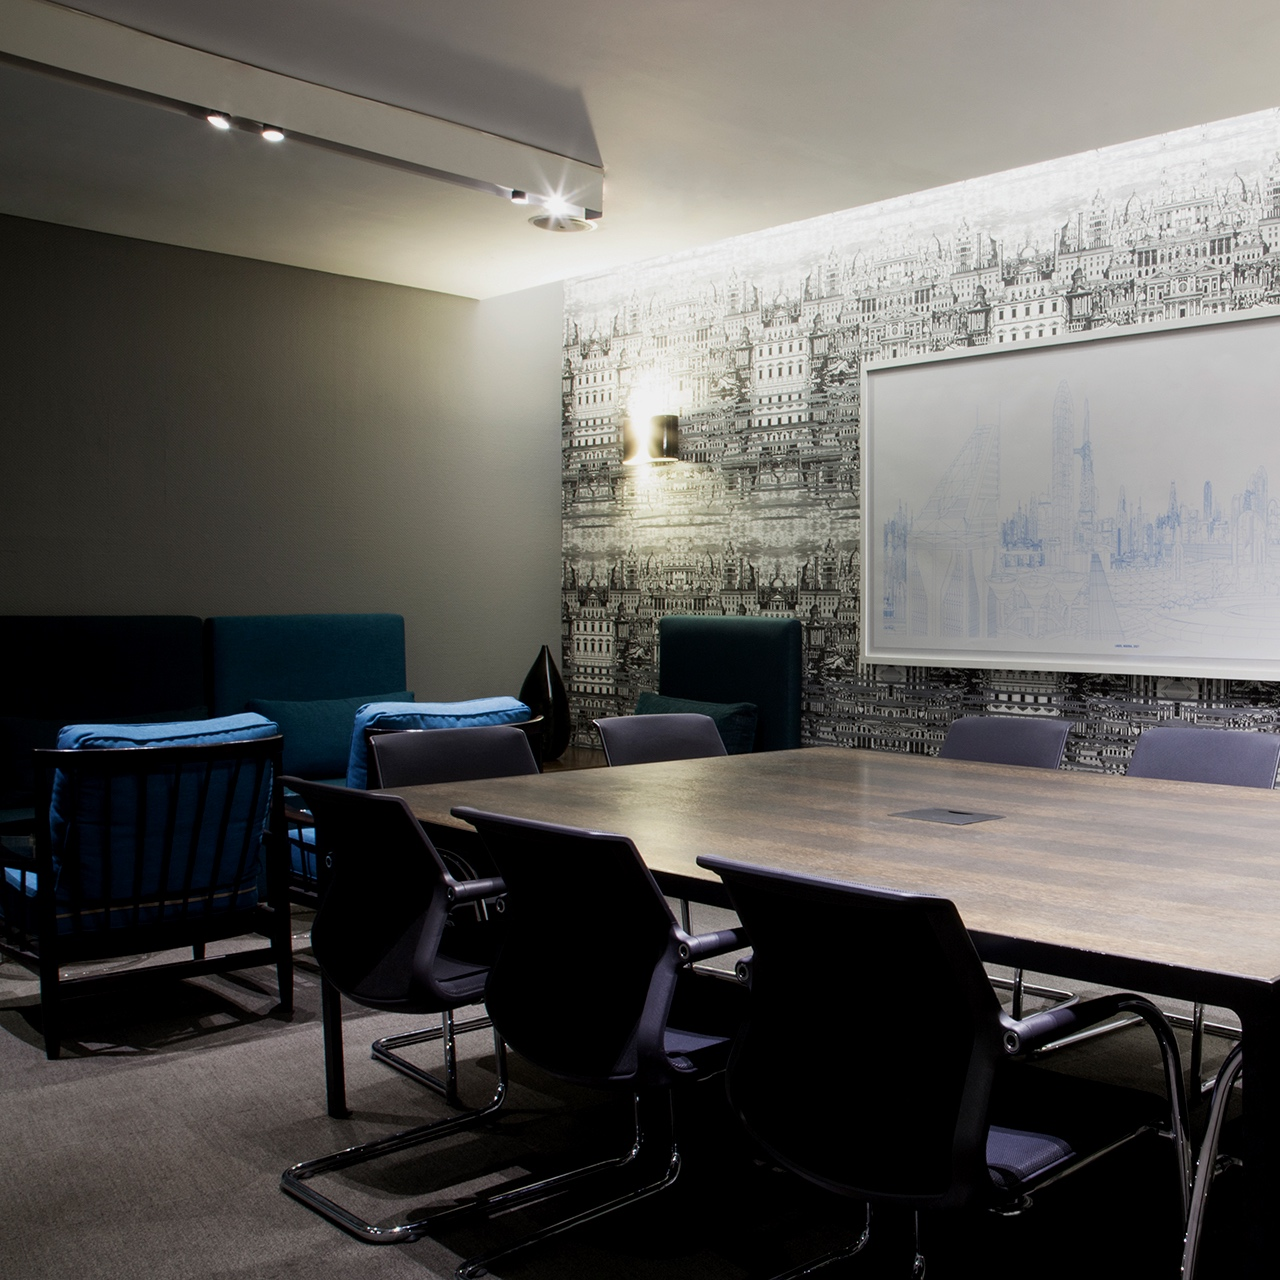 Sixth Avenue - A modern styled boardroom with an architectural backdrop and vibrant furnishings.